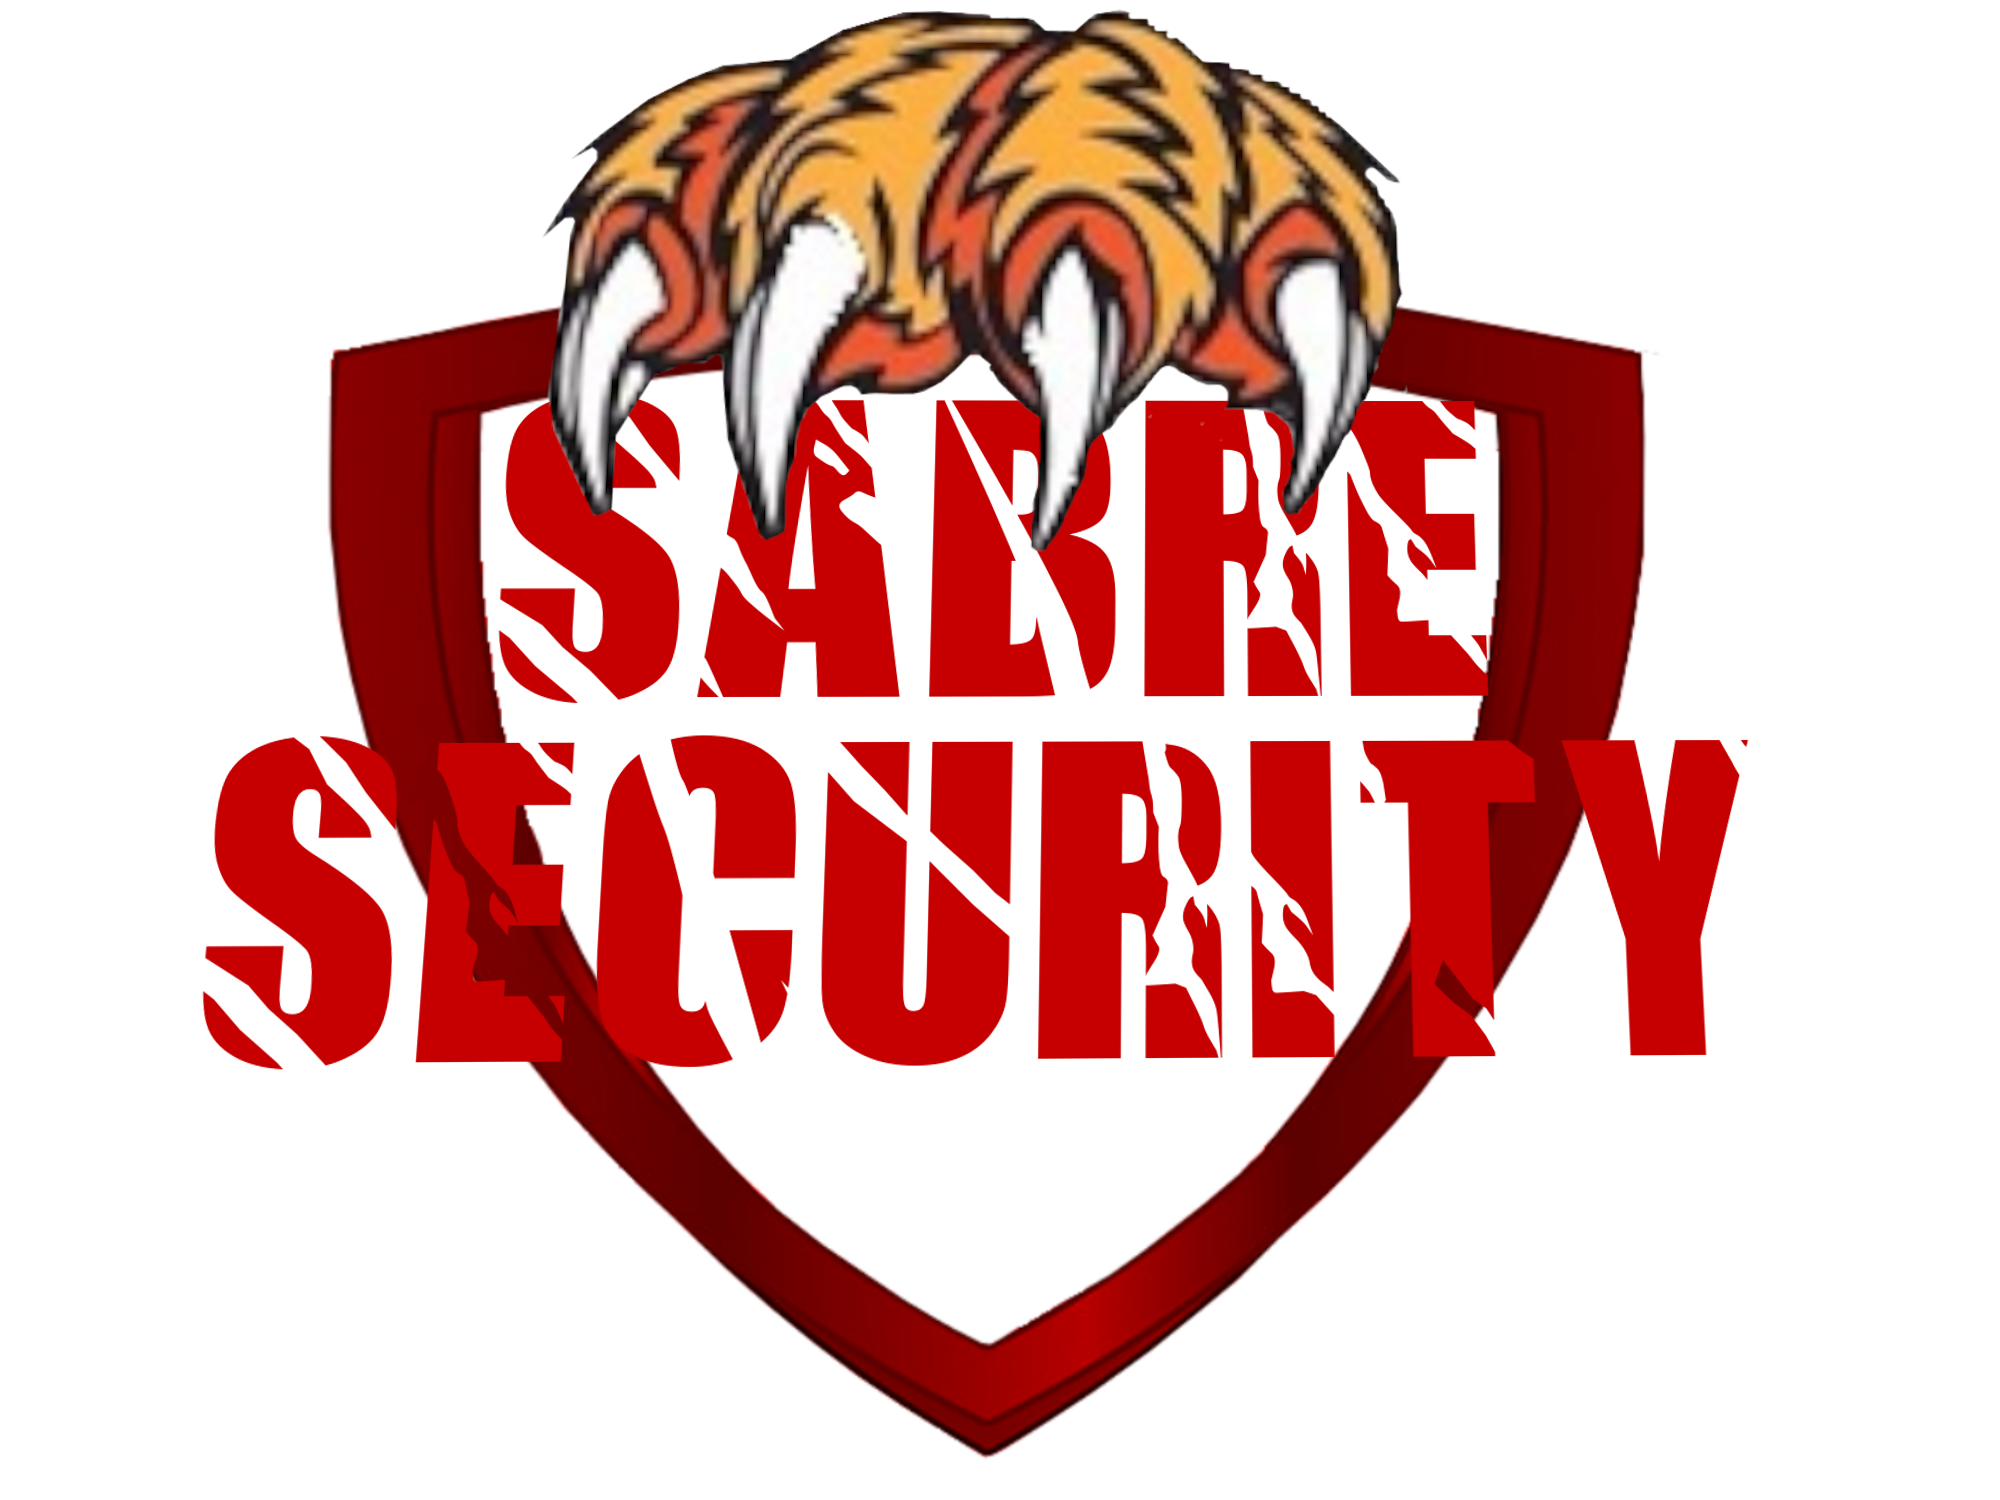 sabresecurity_logo.png